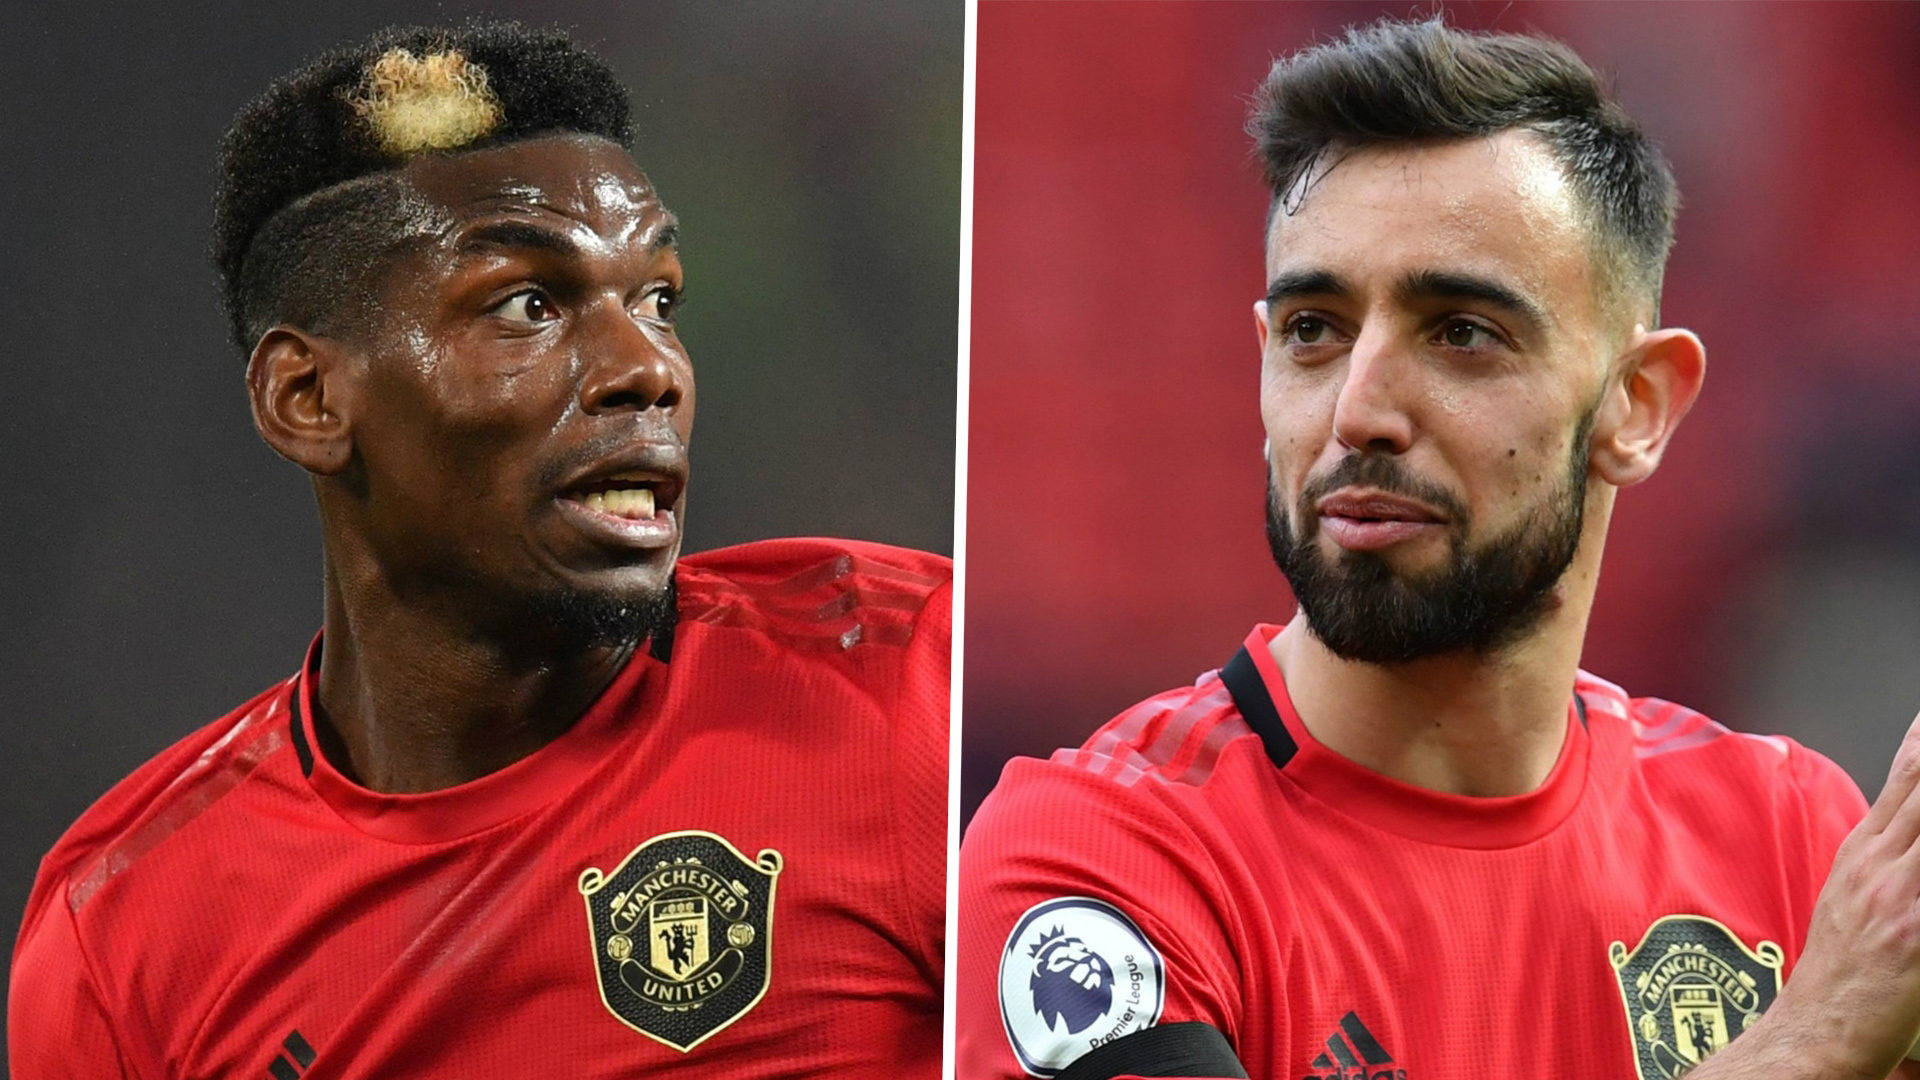 'Good players should be able to with each other' - Giggs hoping Pogba & Fernandes pairing works out for Man Utd